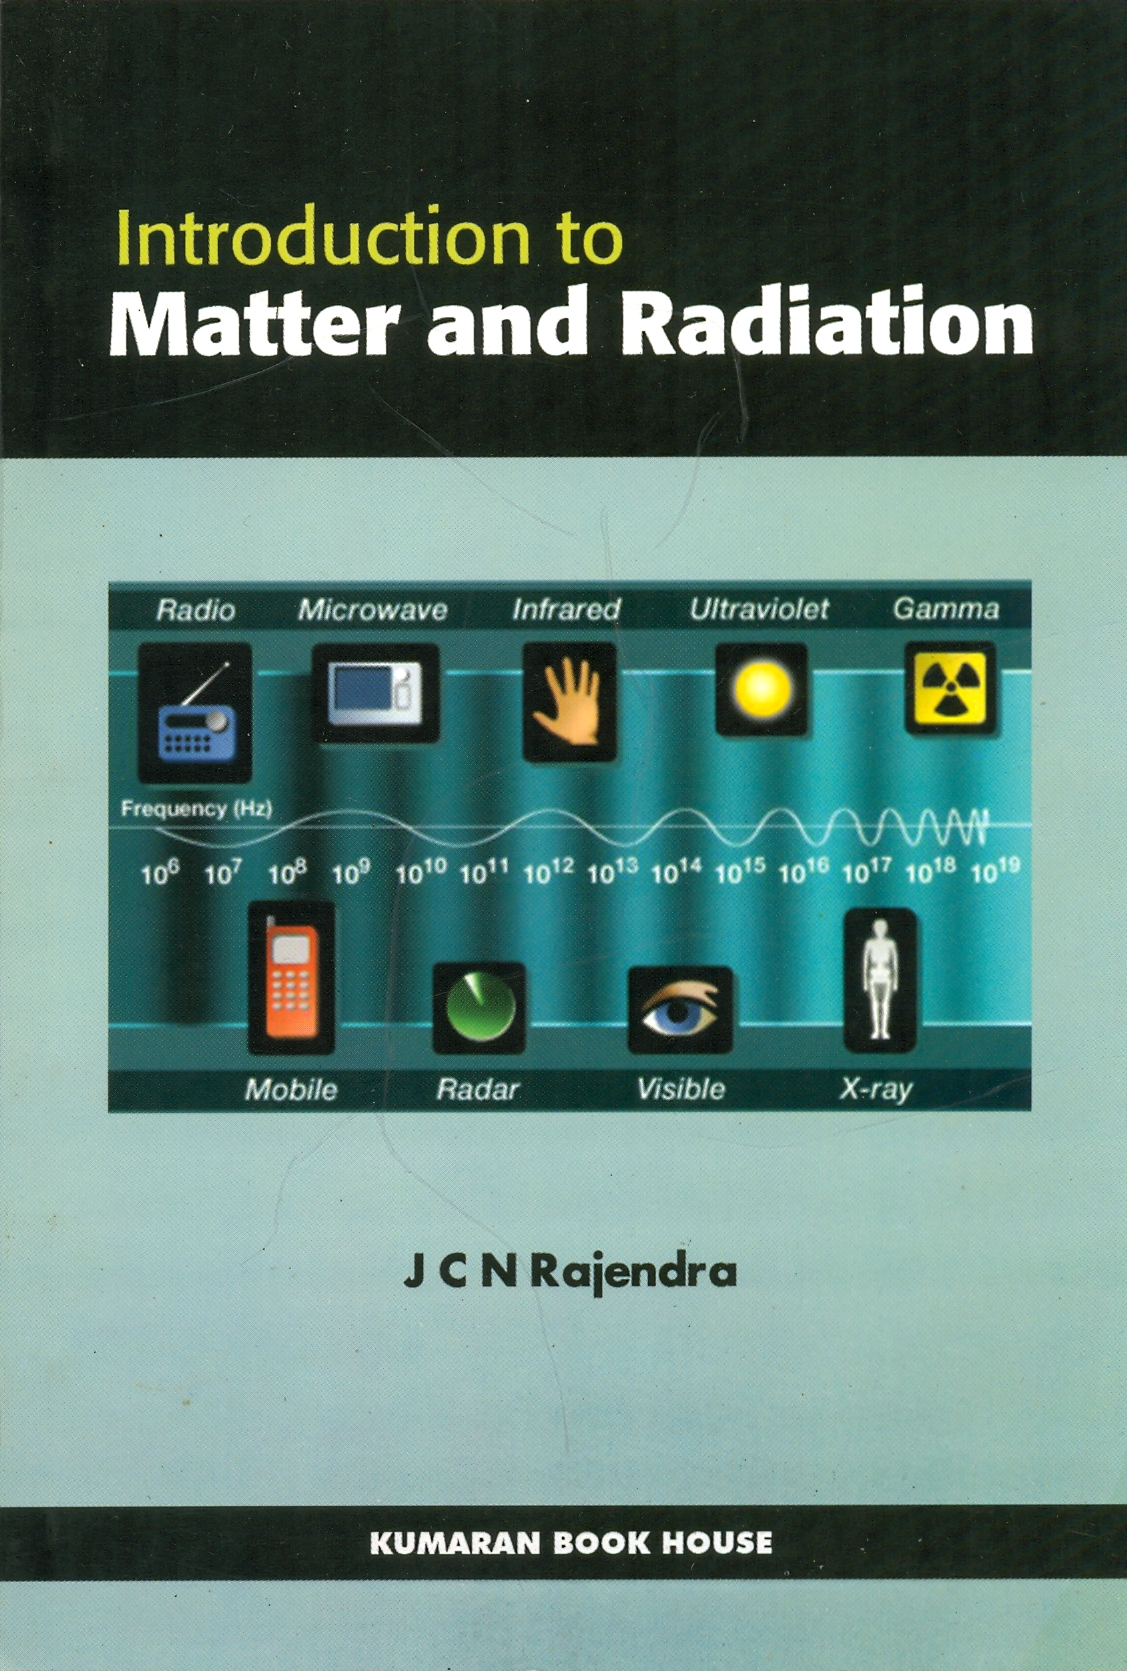 ‹¨«Introduction to Matter and Radiation‹¨« (2006) ISBN 955-659-062-5